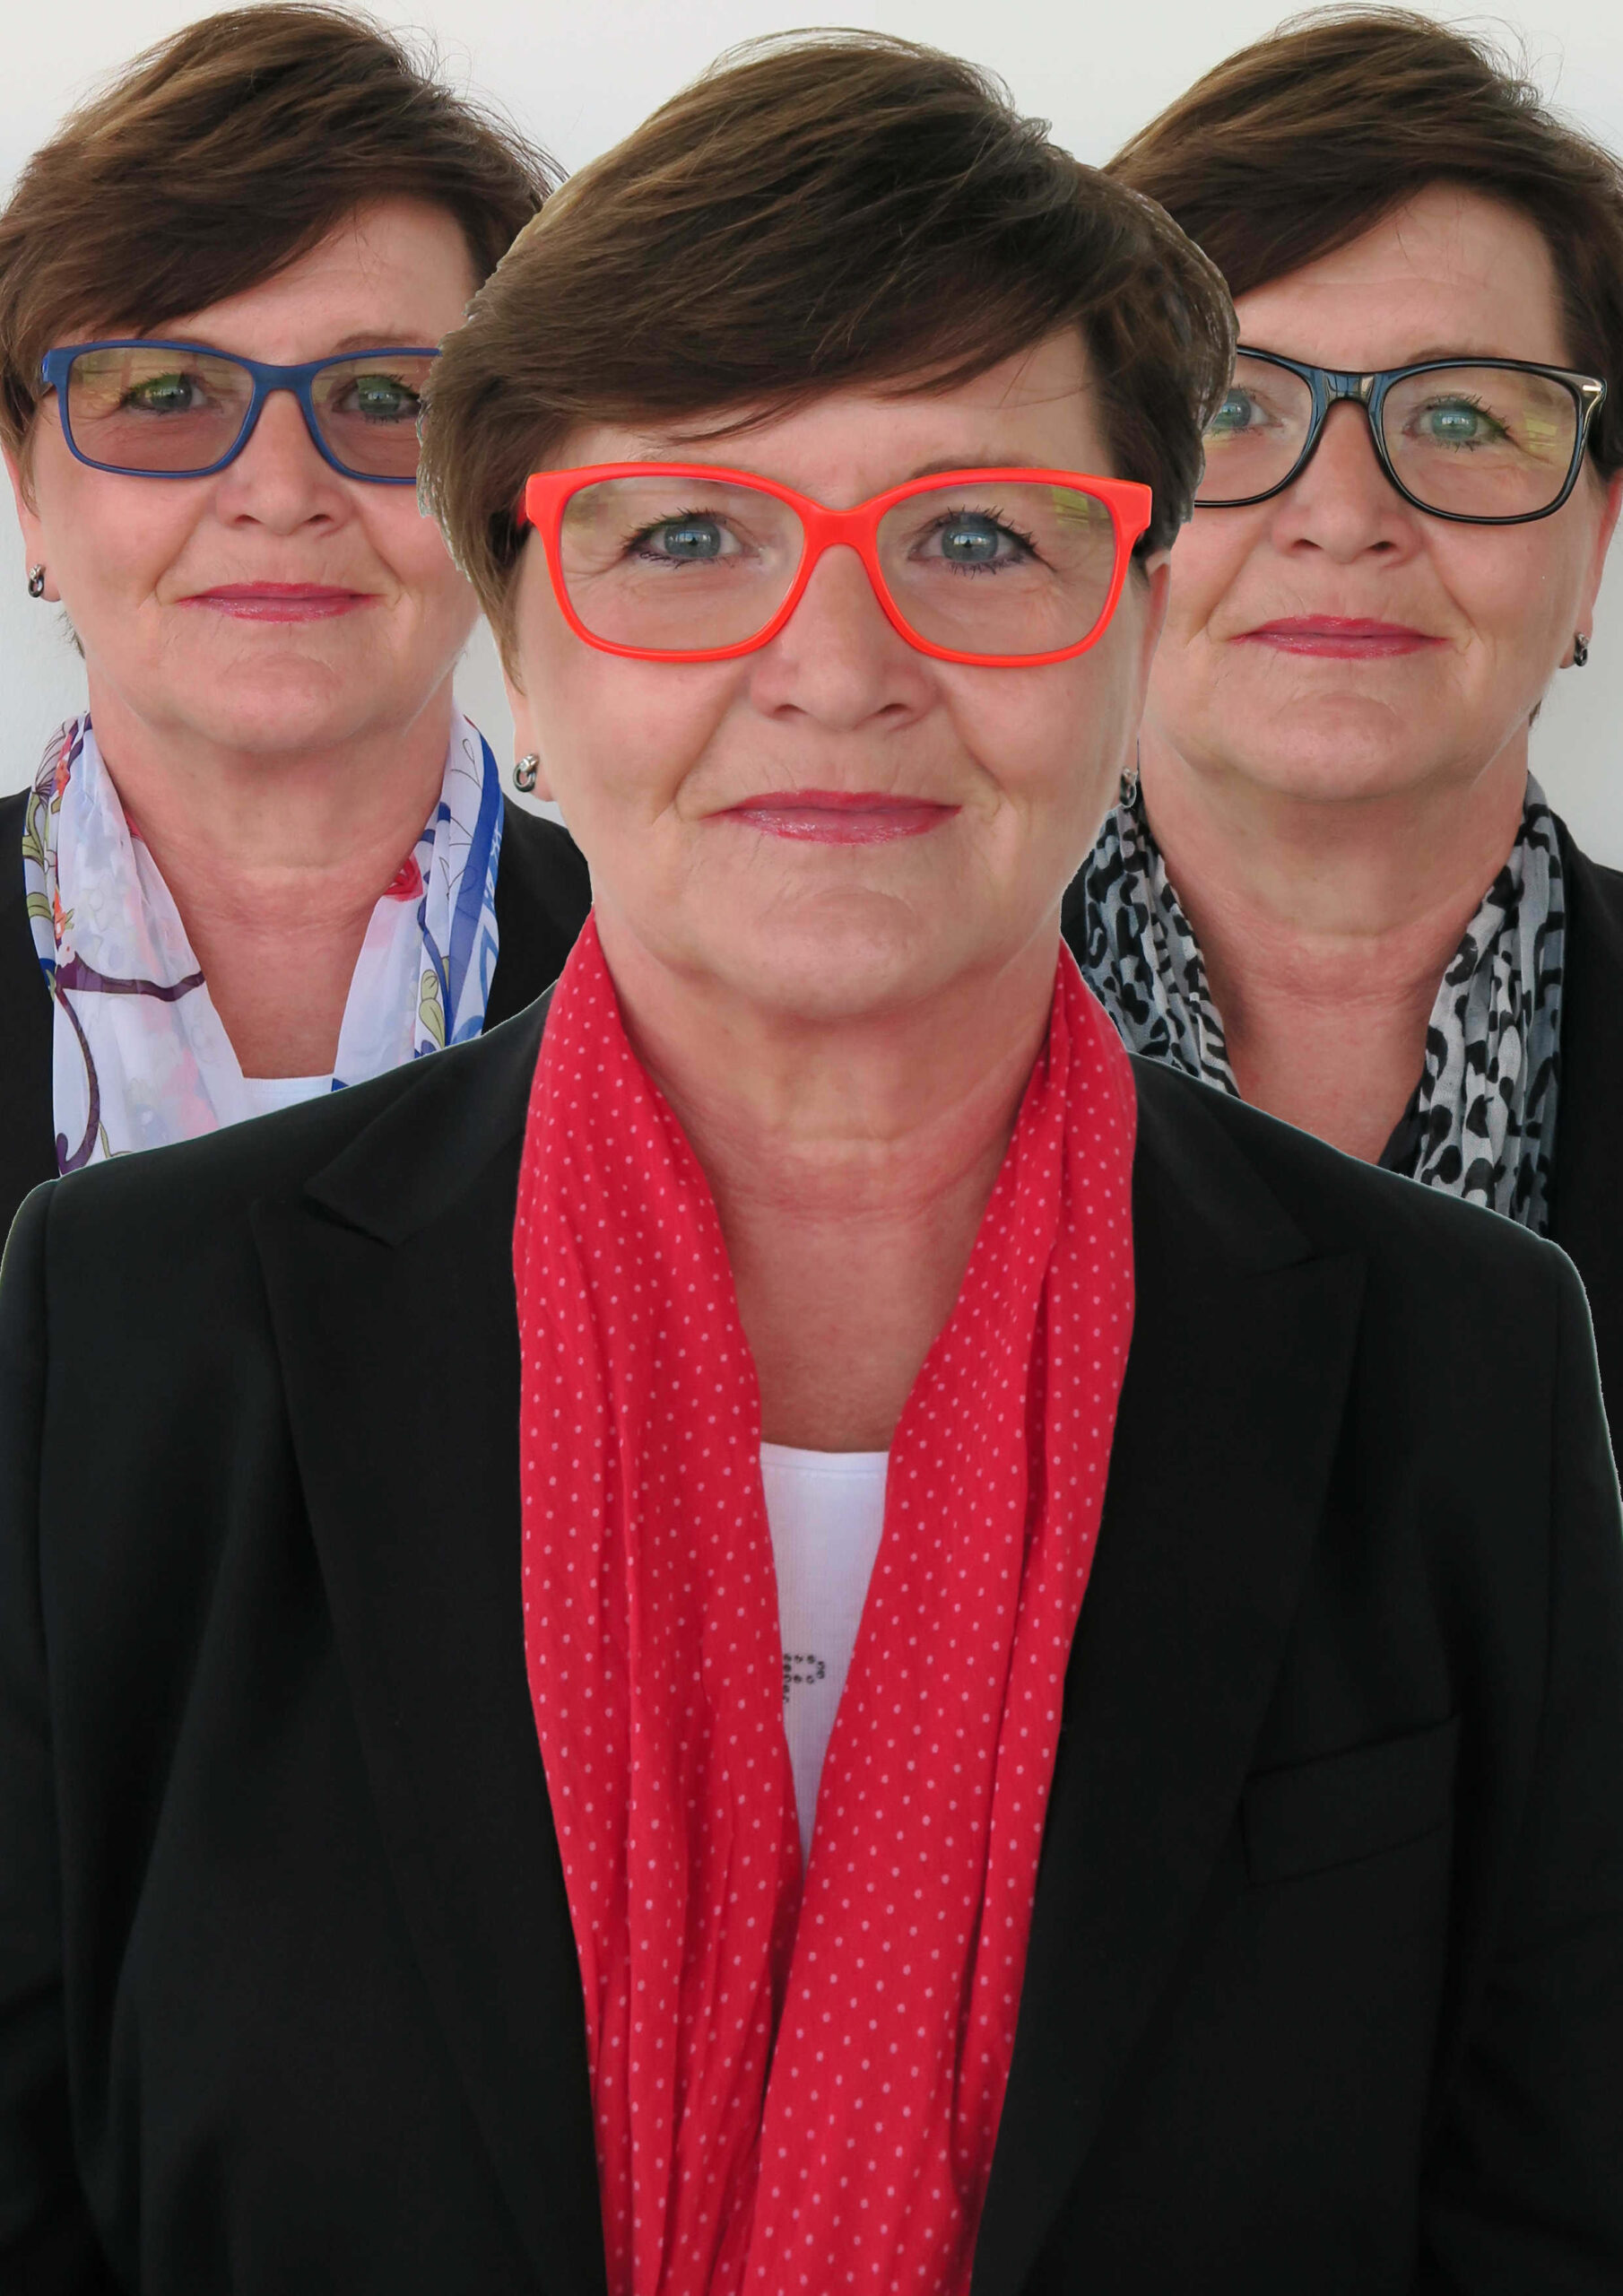 Brille im VGH Business Style Karriereblog